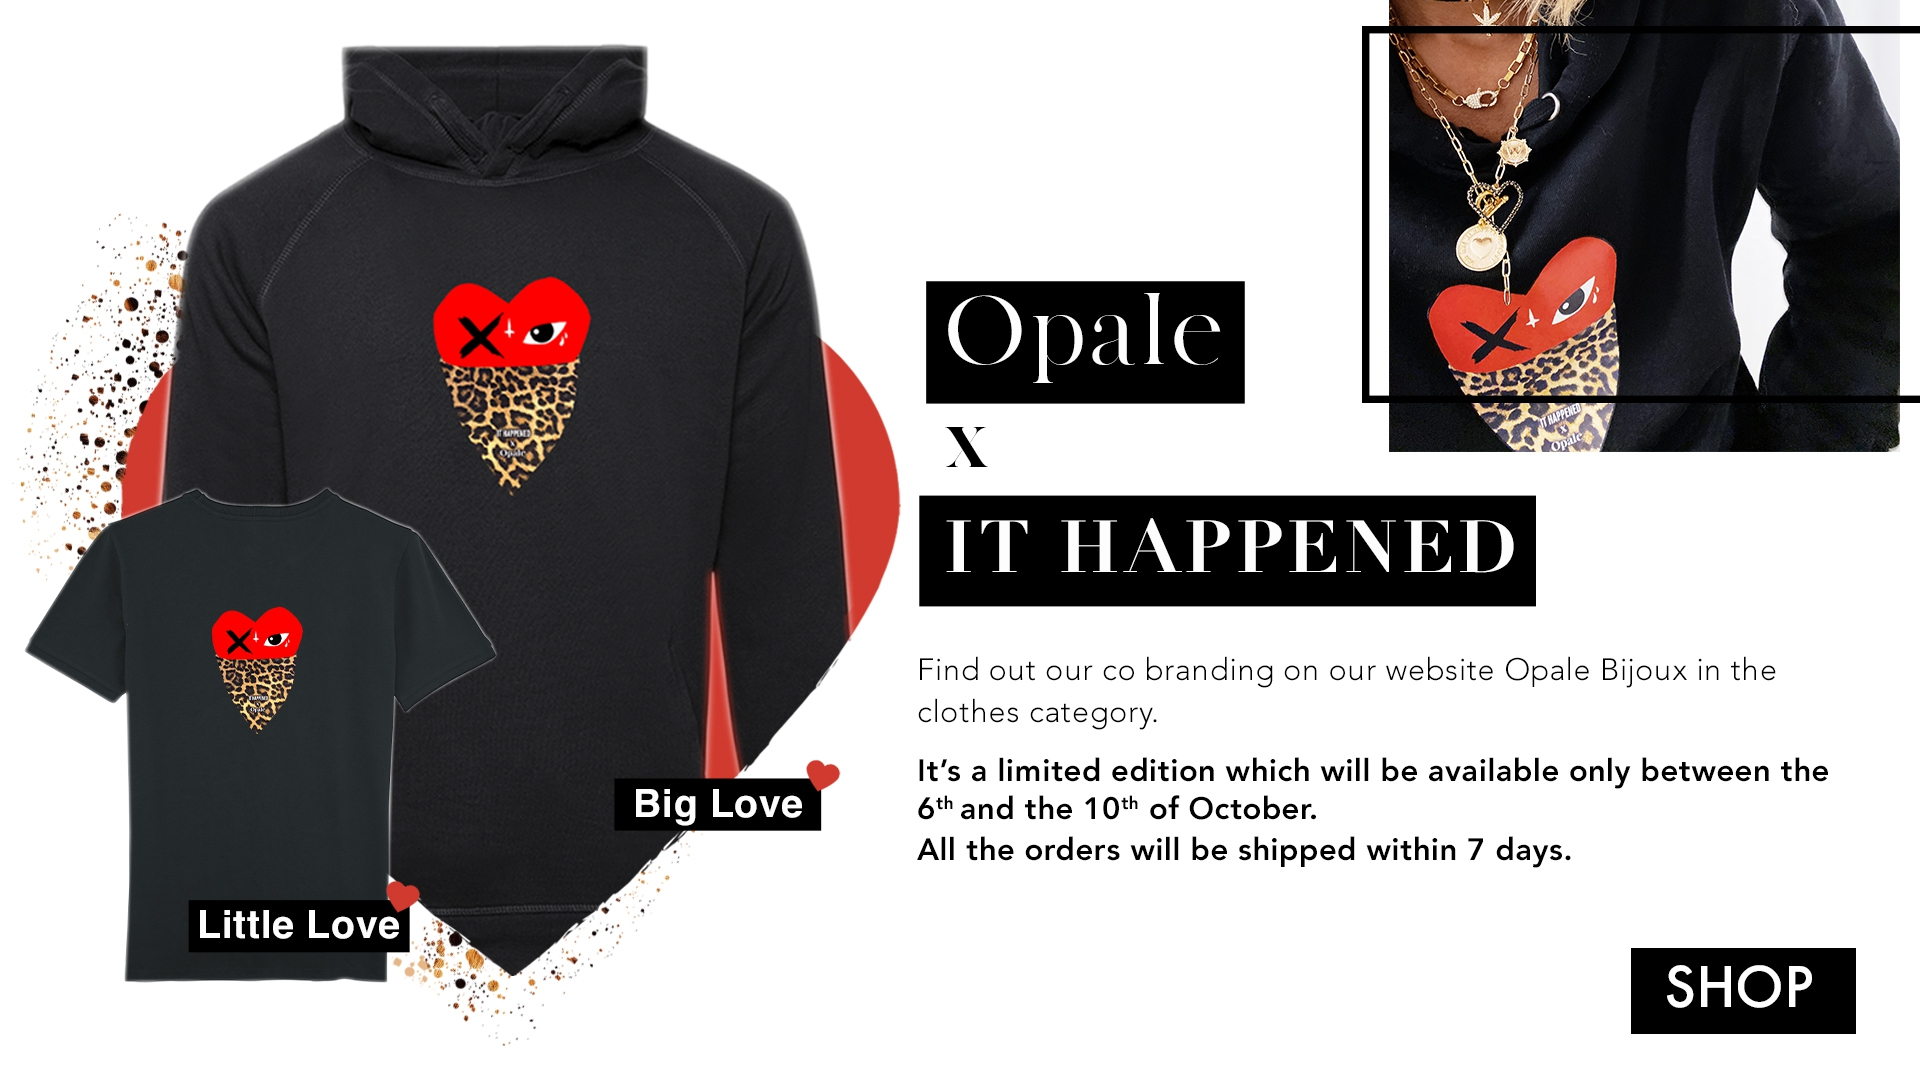 Opale x it happened